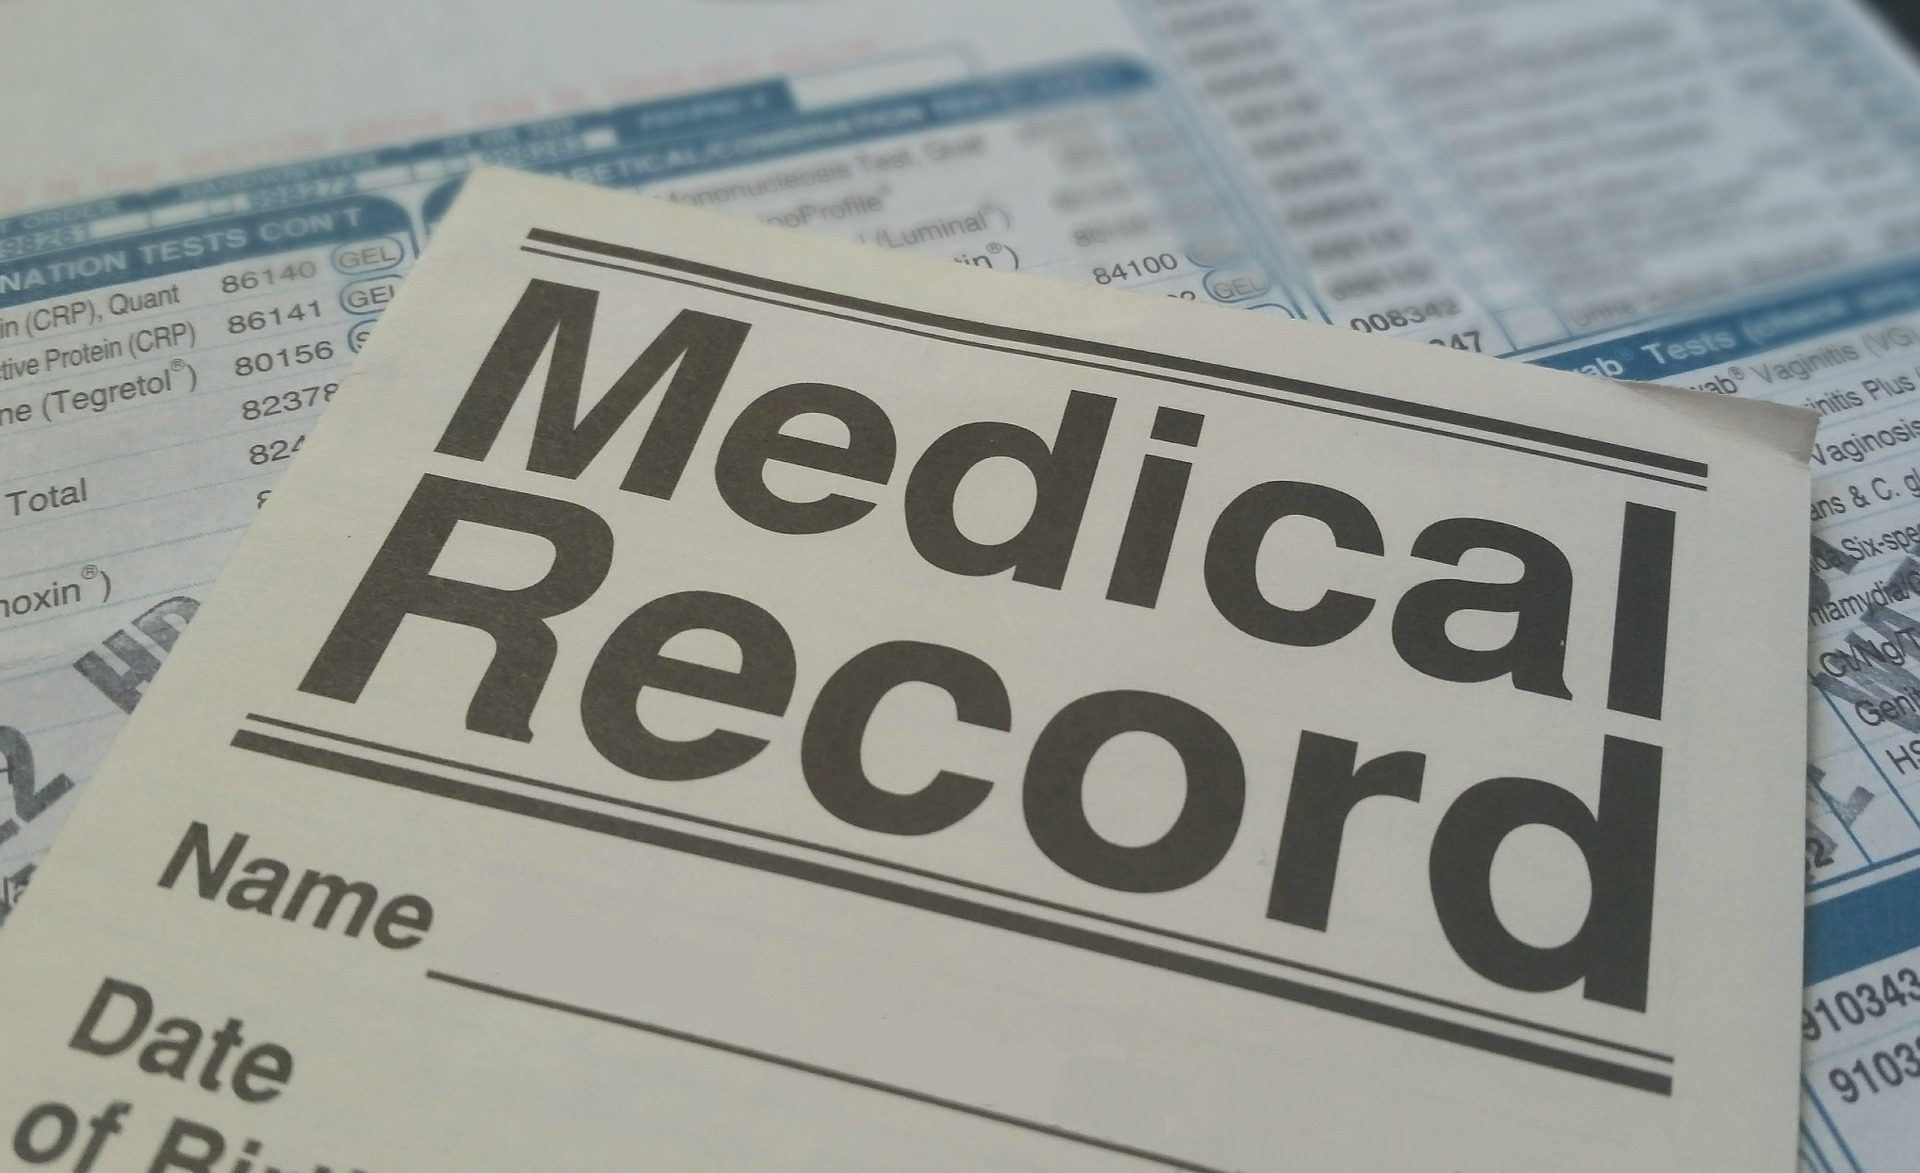 A medical record form laying on a pile of medical papers